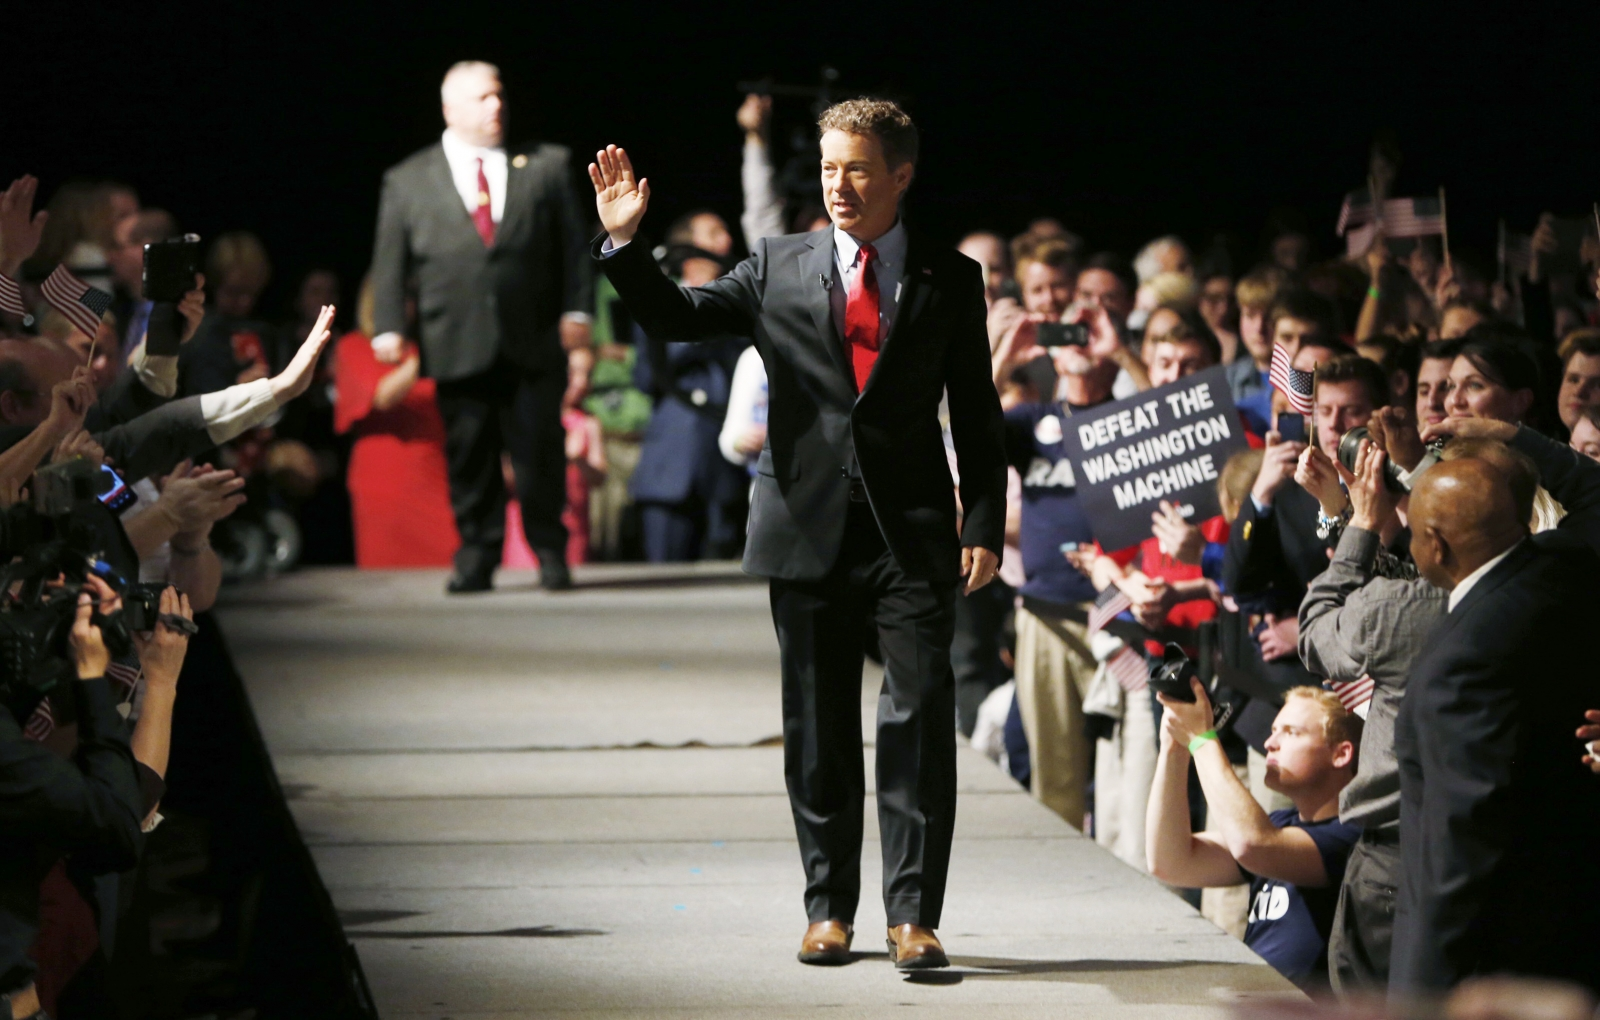 Rand Paul walks on stage in Louisville